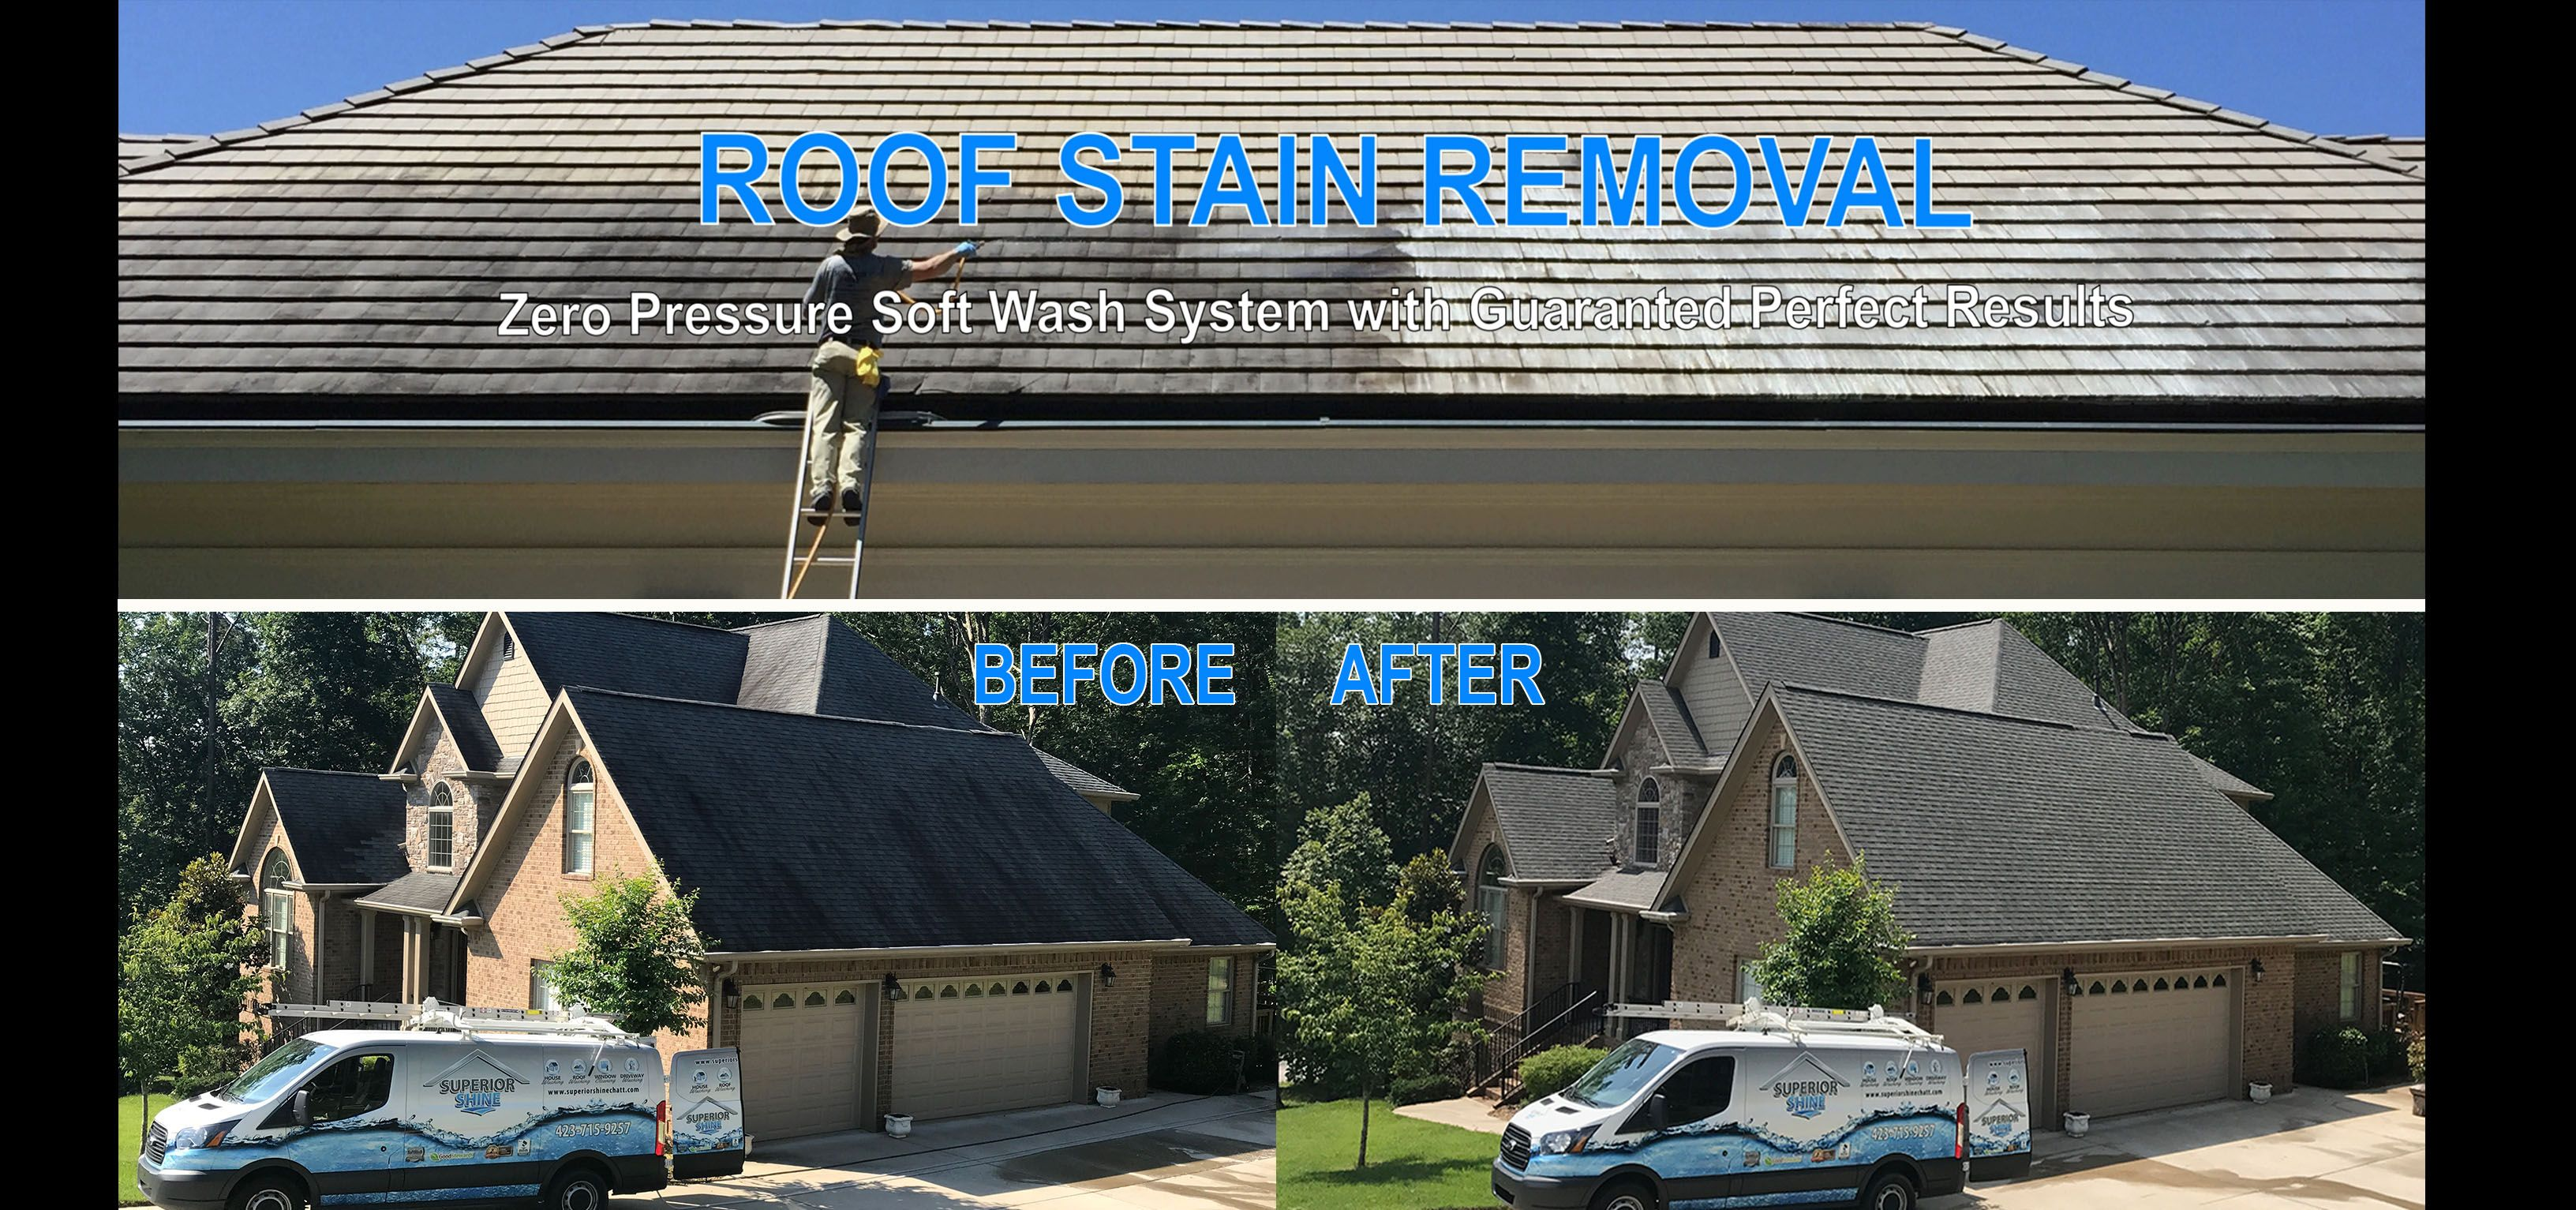 Soft Eash Roof And Siding